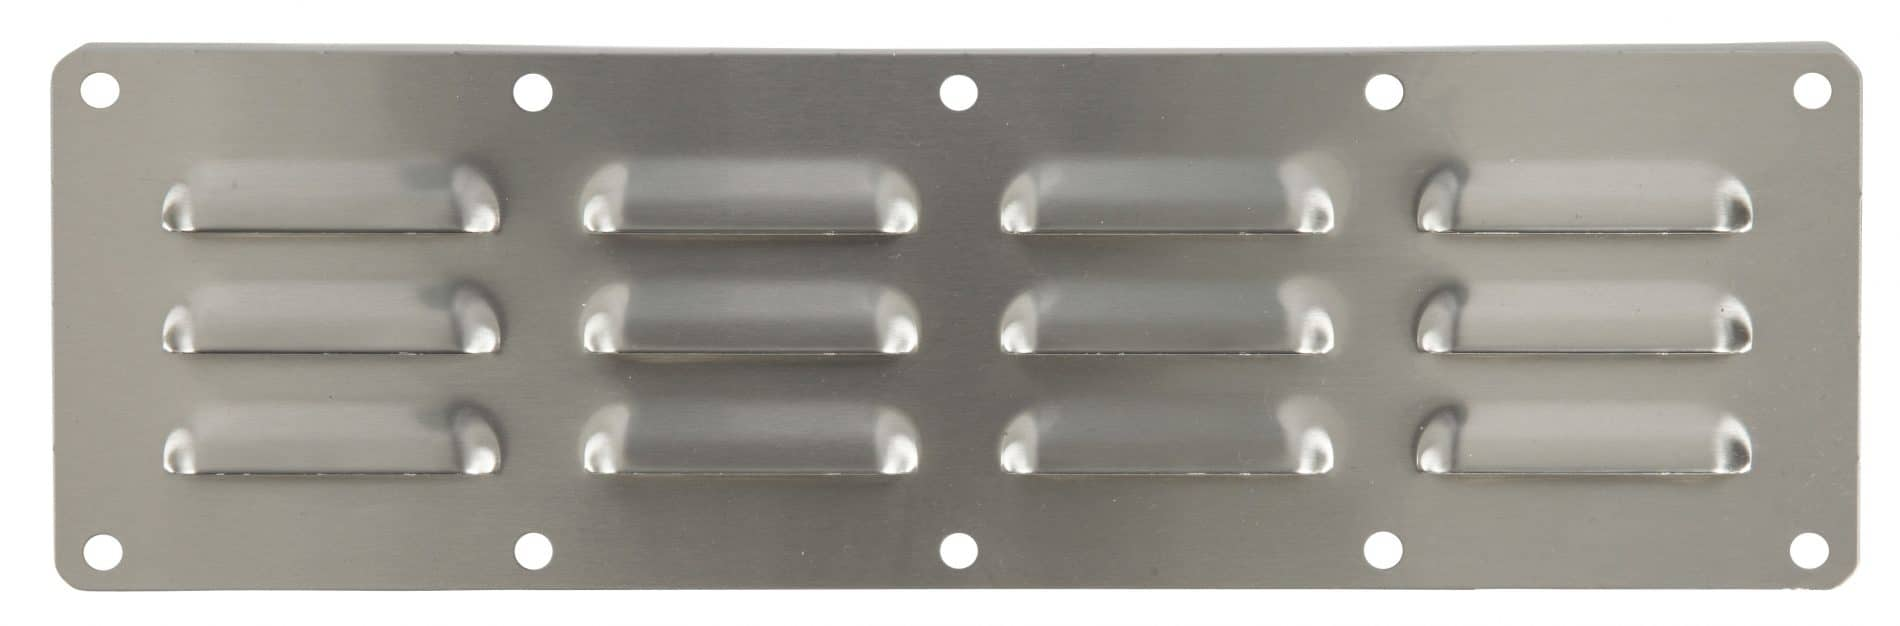 Outdoor Vent Covers >> Coyote Island Vent Cover